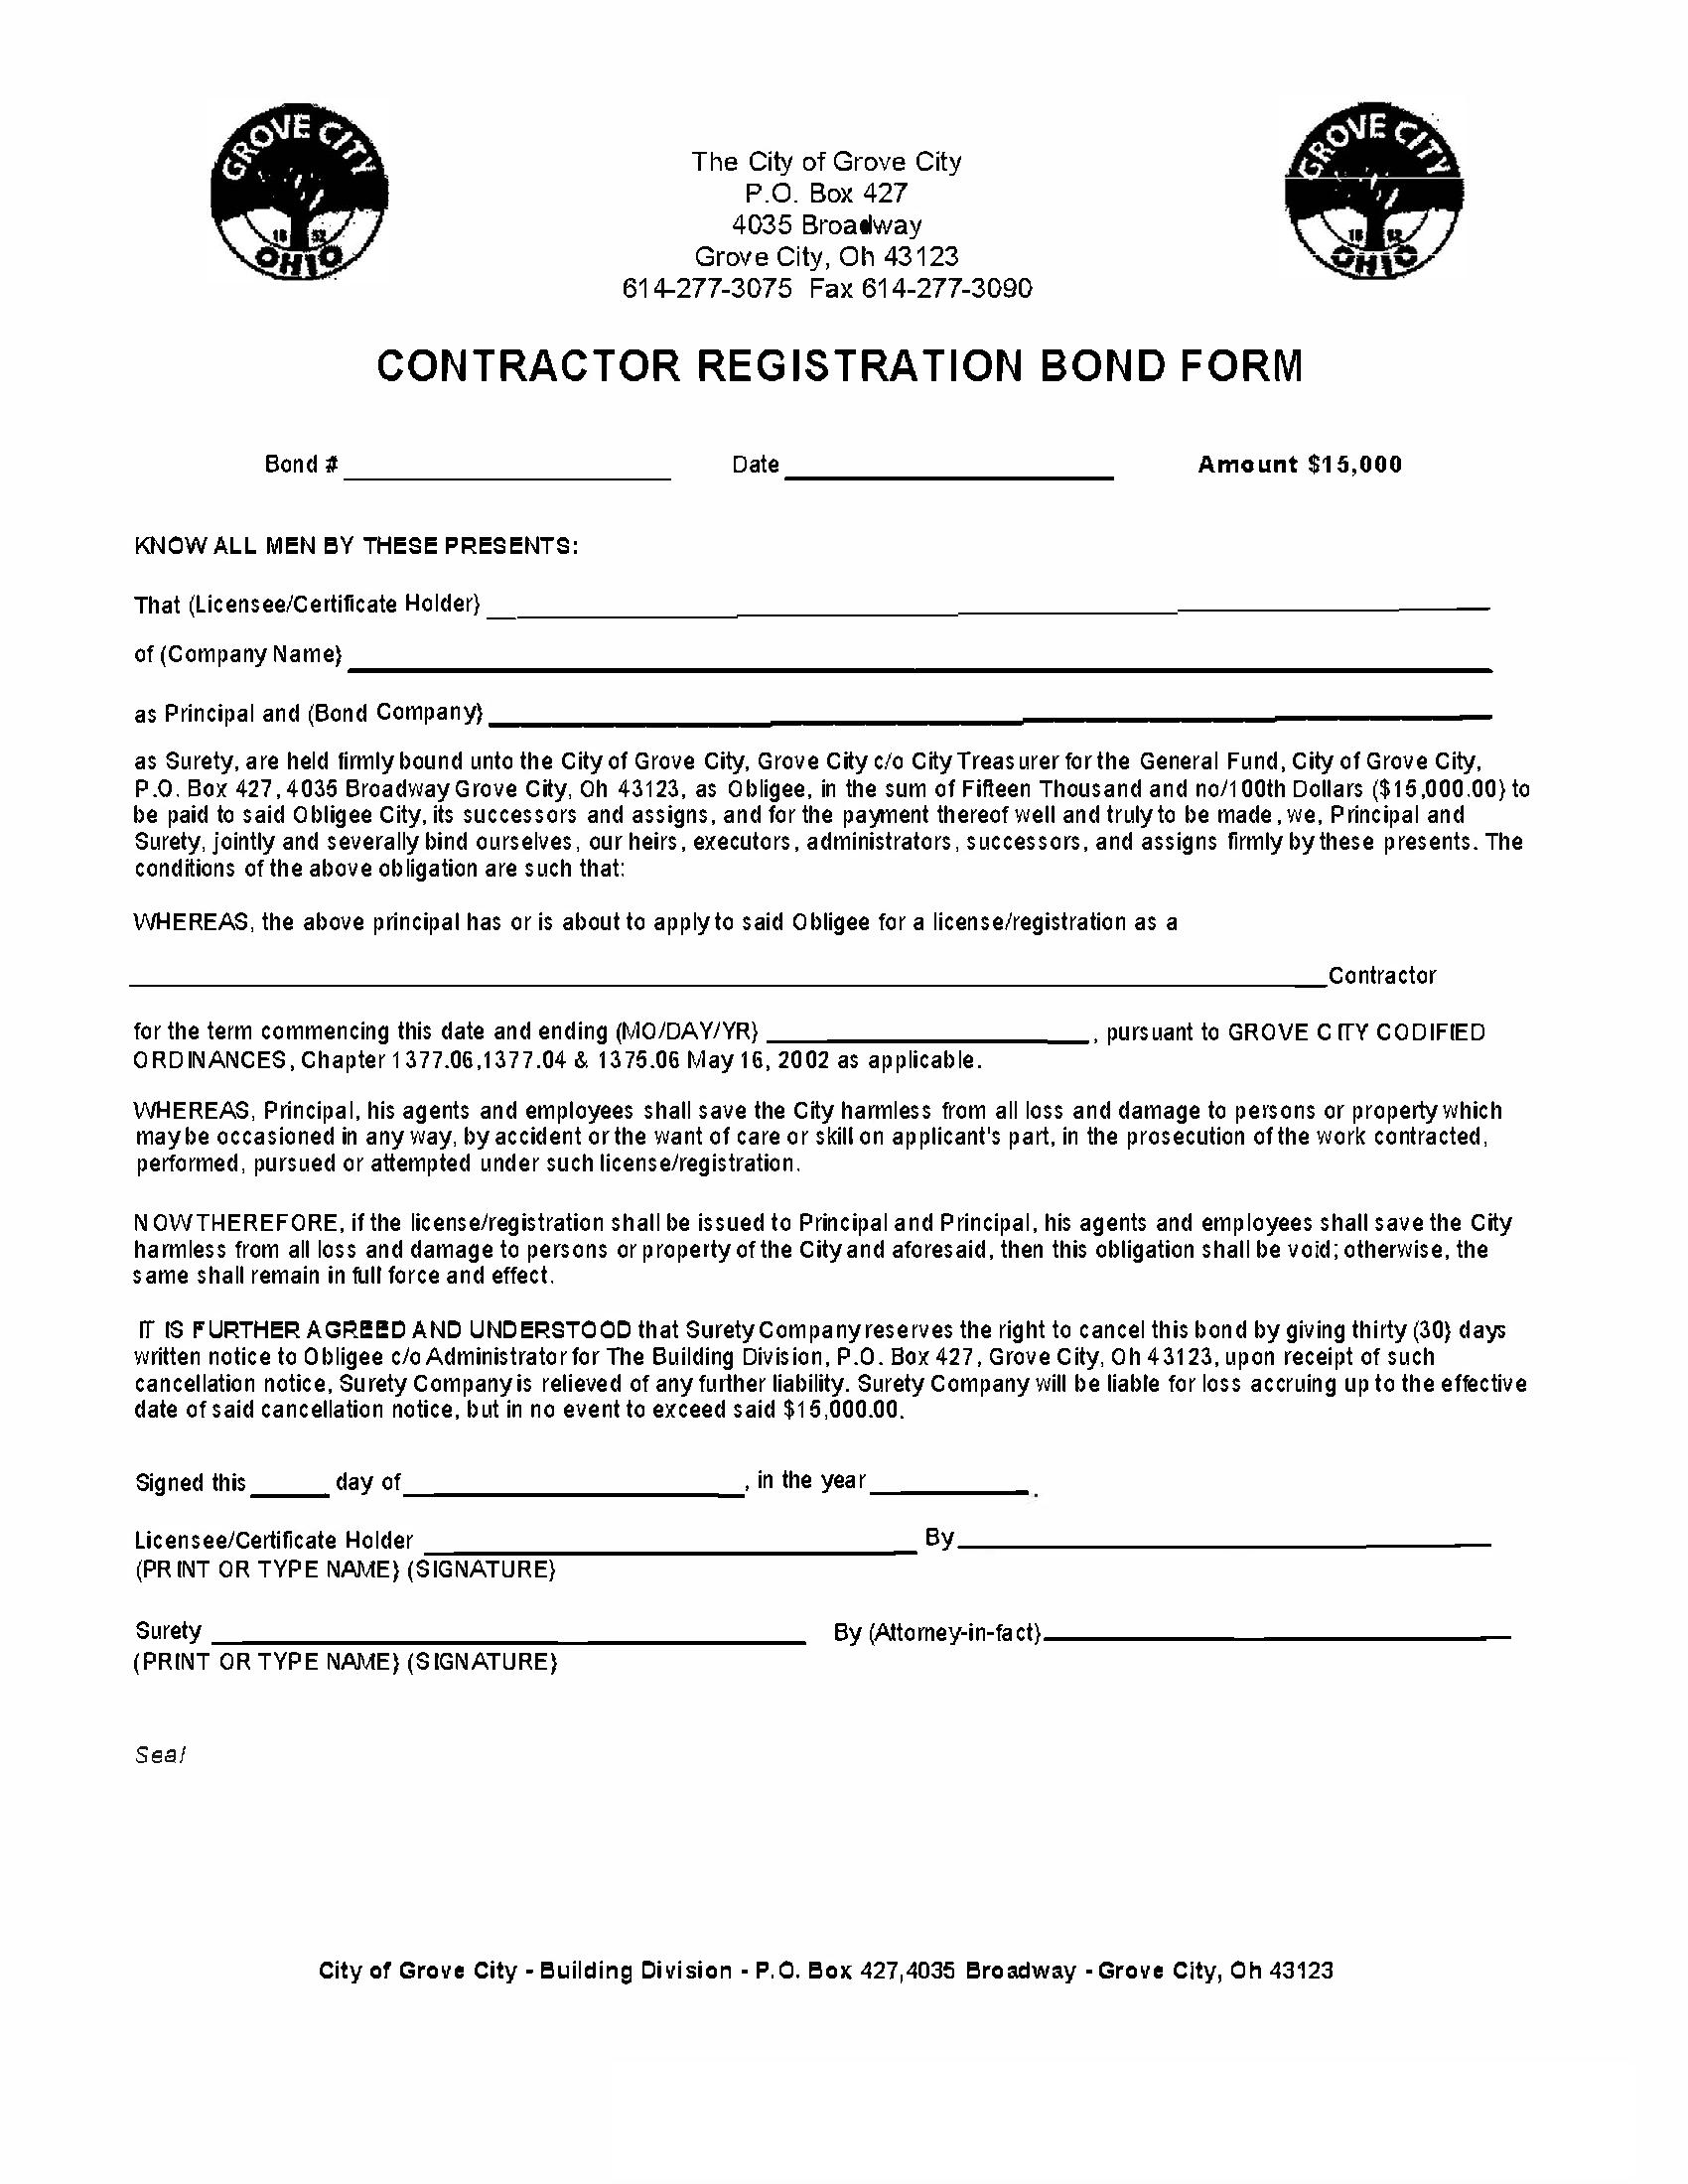 Grove City - City Contractor Registration sample image